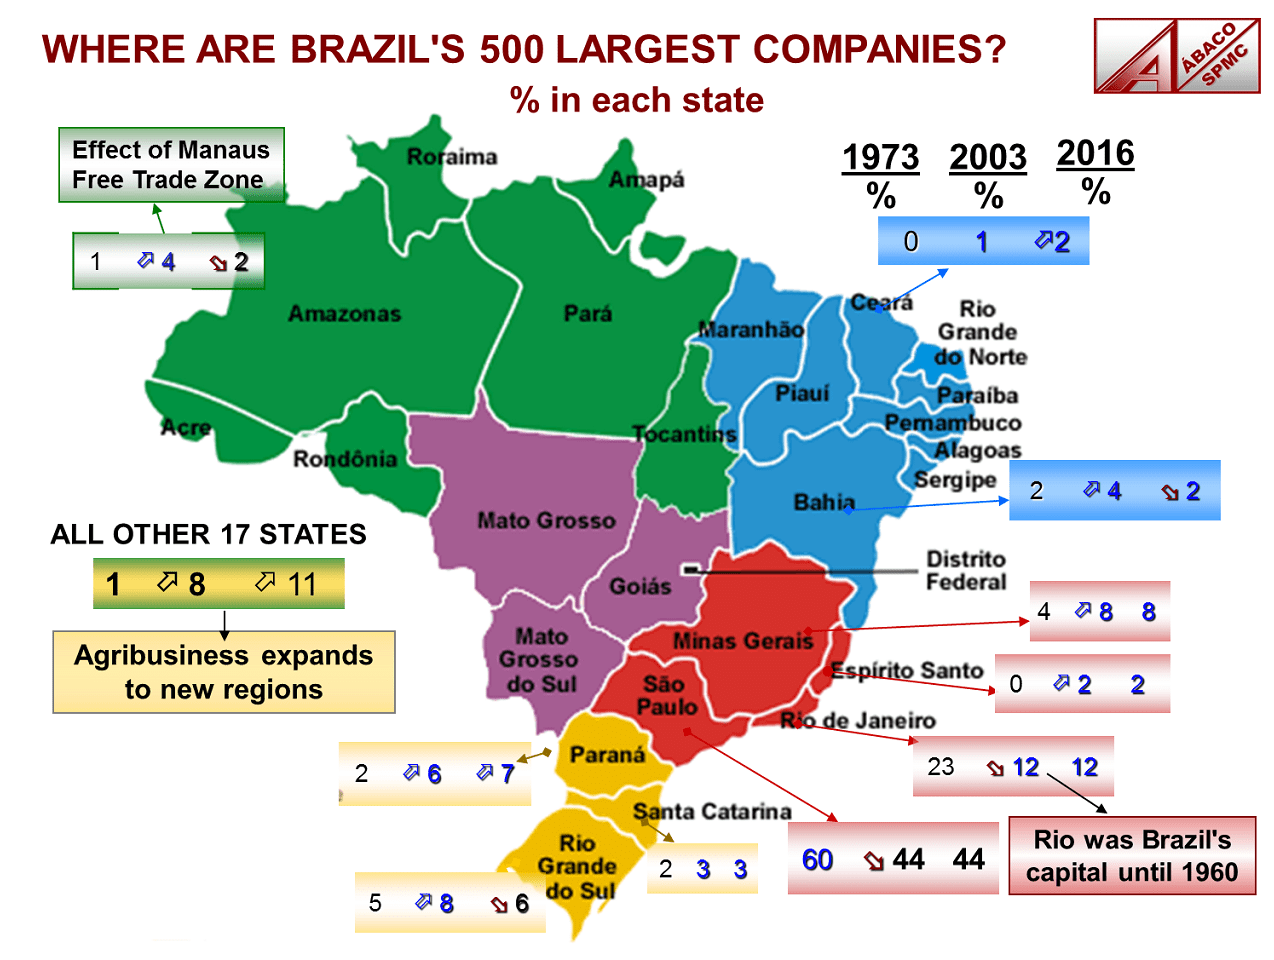 The 500 biggest businesses in Brazil are mostly located in the Southeastern and Southern states.